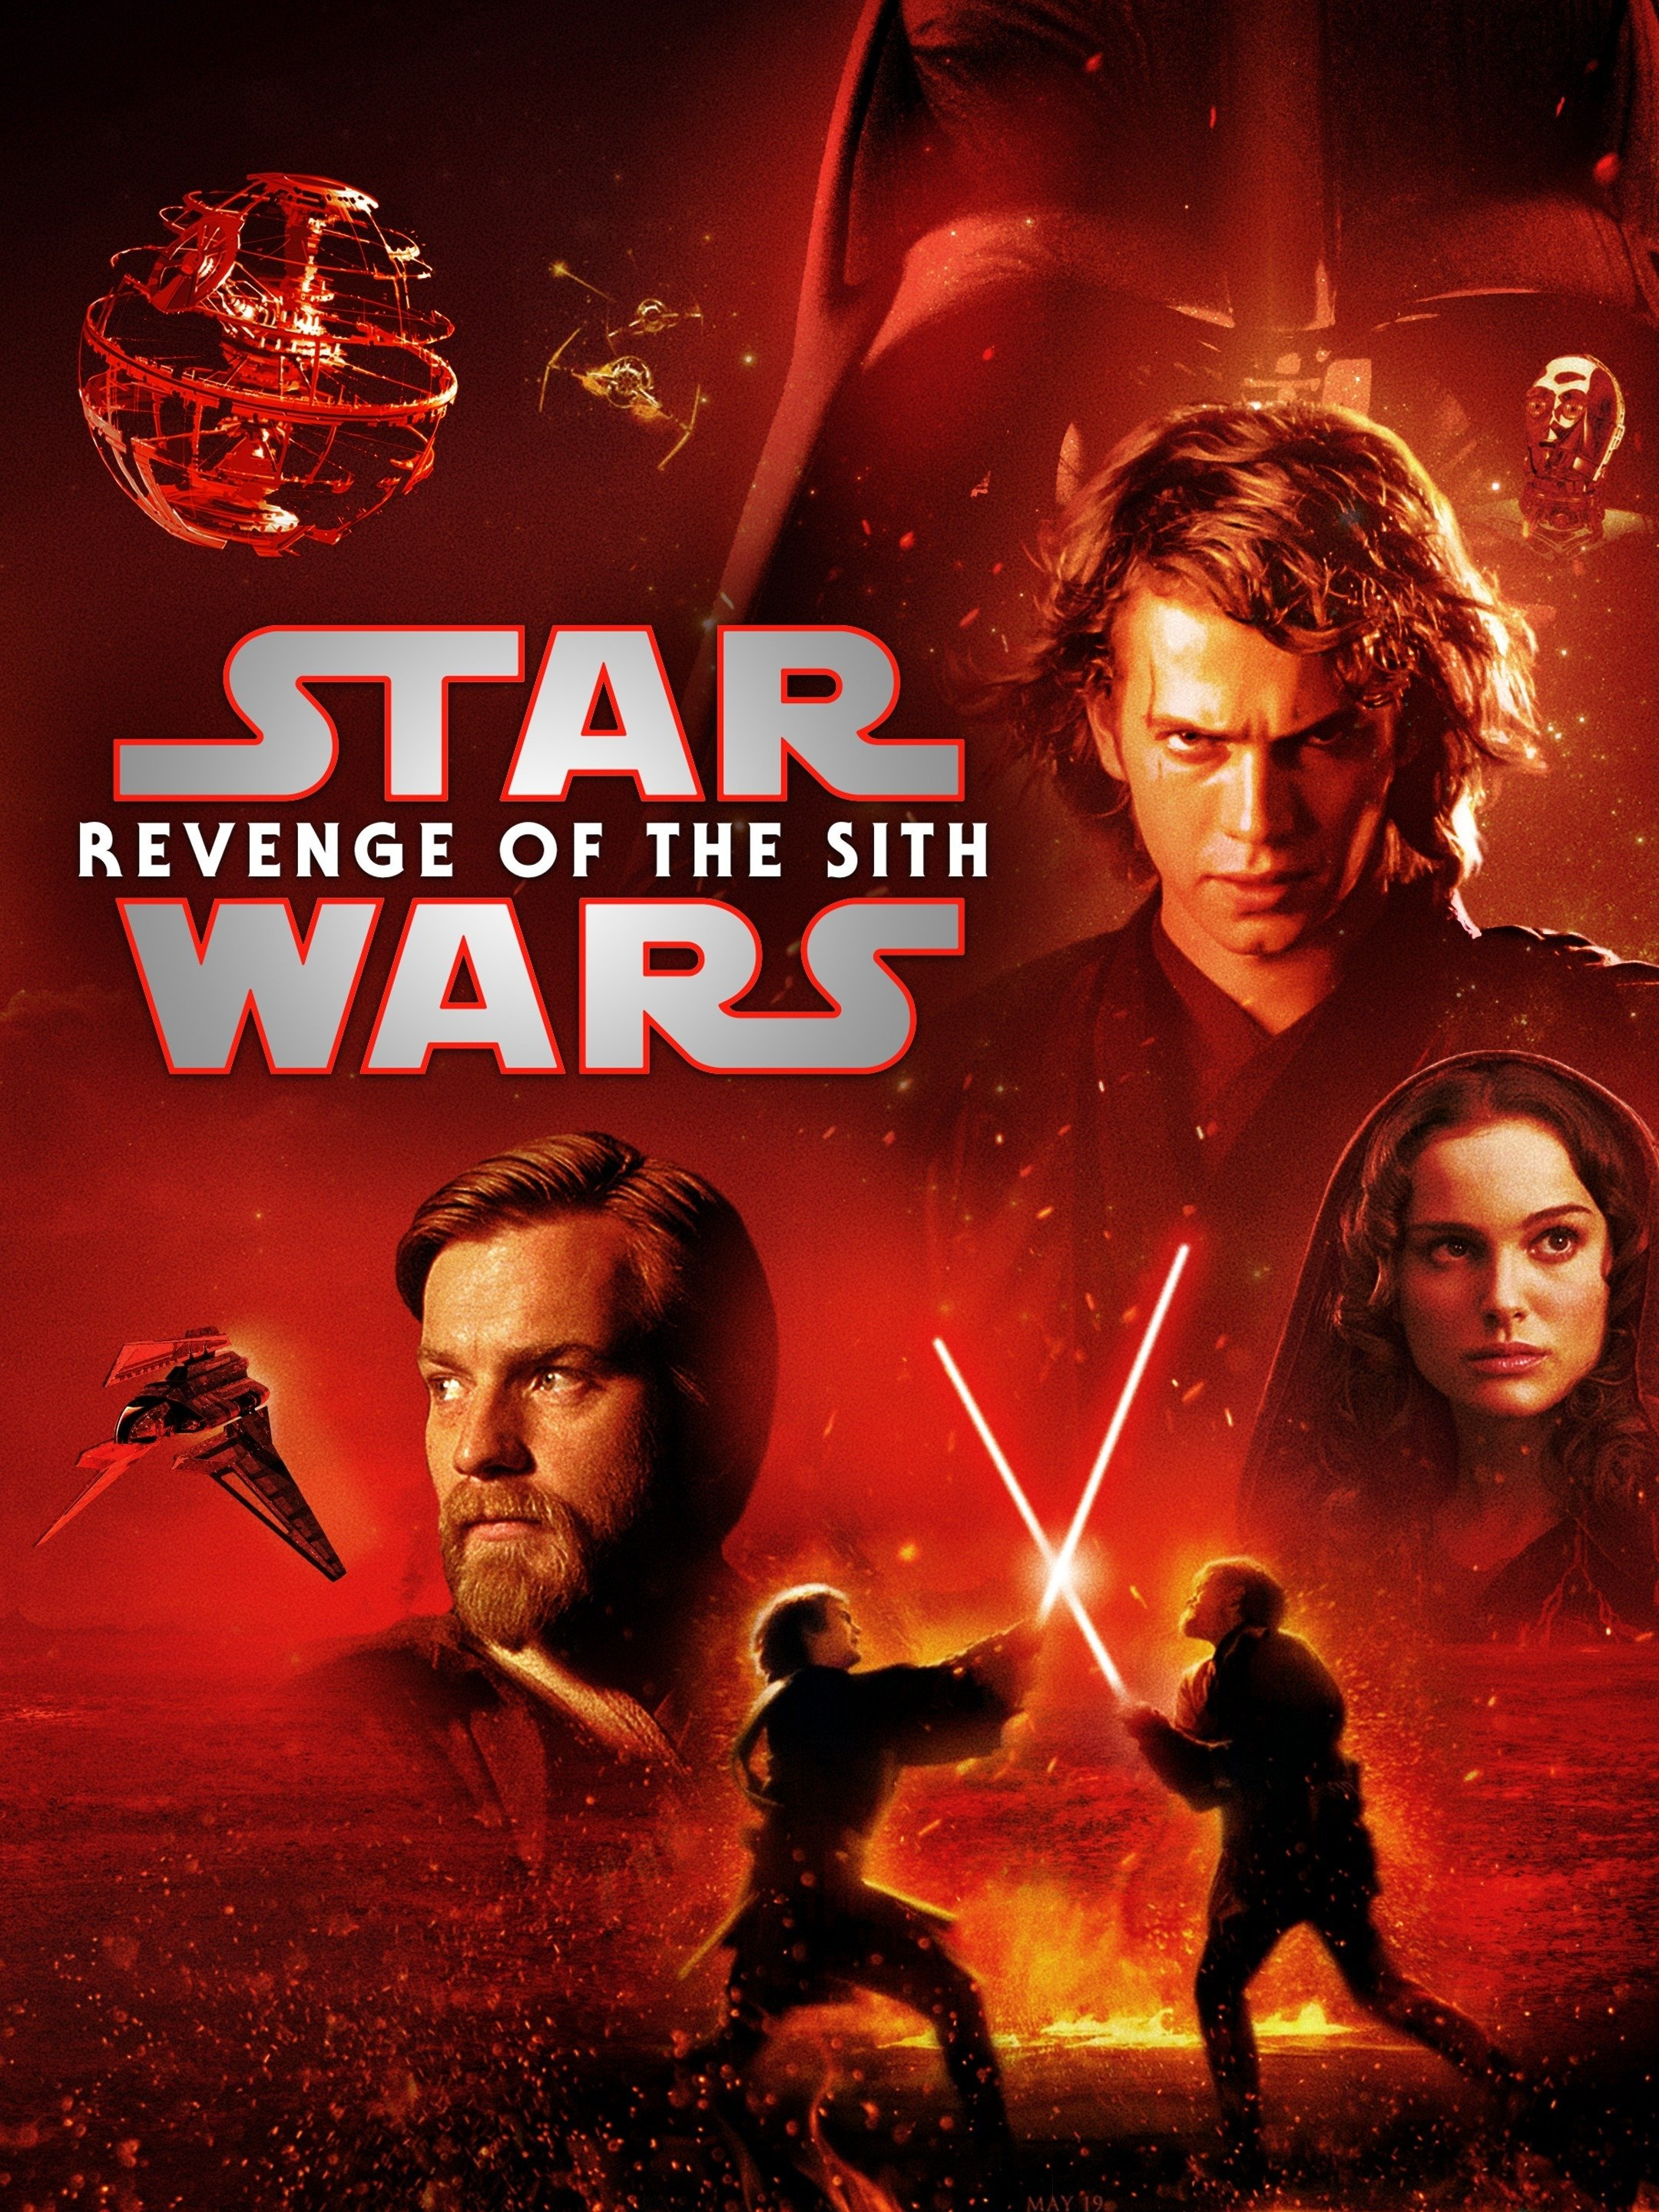 Star Wars Episode Iii Revenge Of The Sith Movietickets